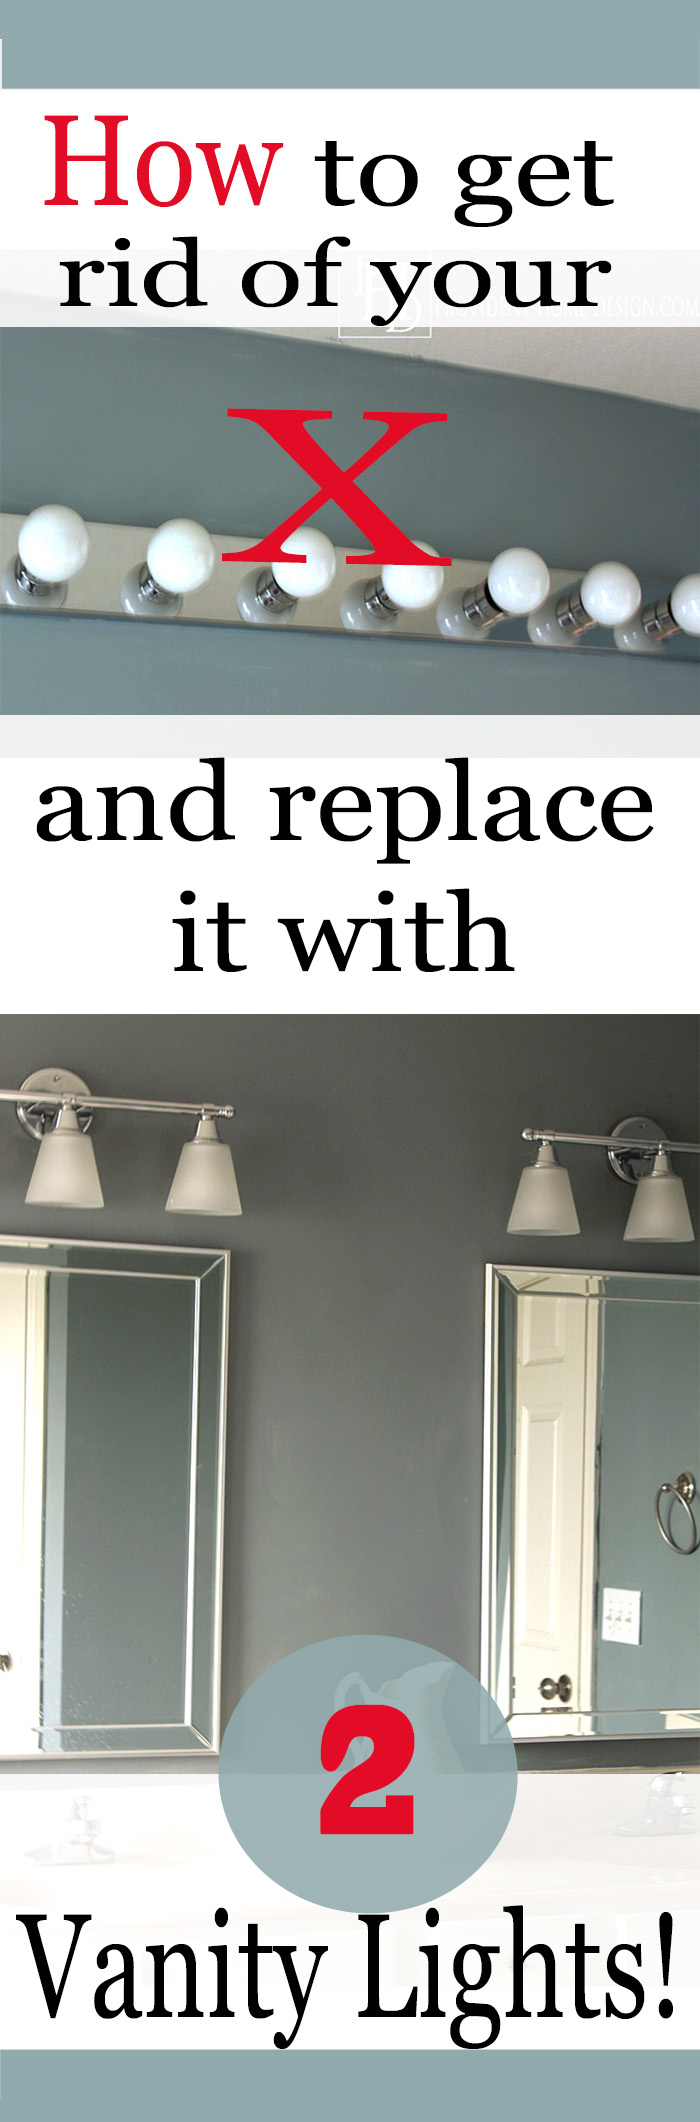 How to replace a hollywood light with 2 vanity lights how to replace your hollywood light with 2 vanity lights arubaitofo Choice Image